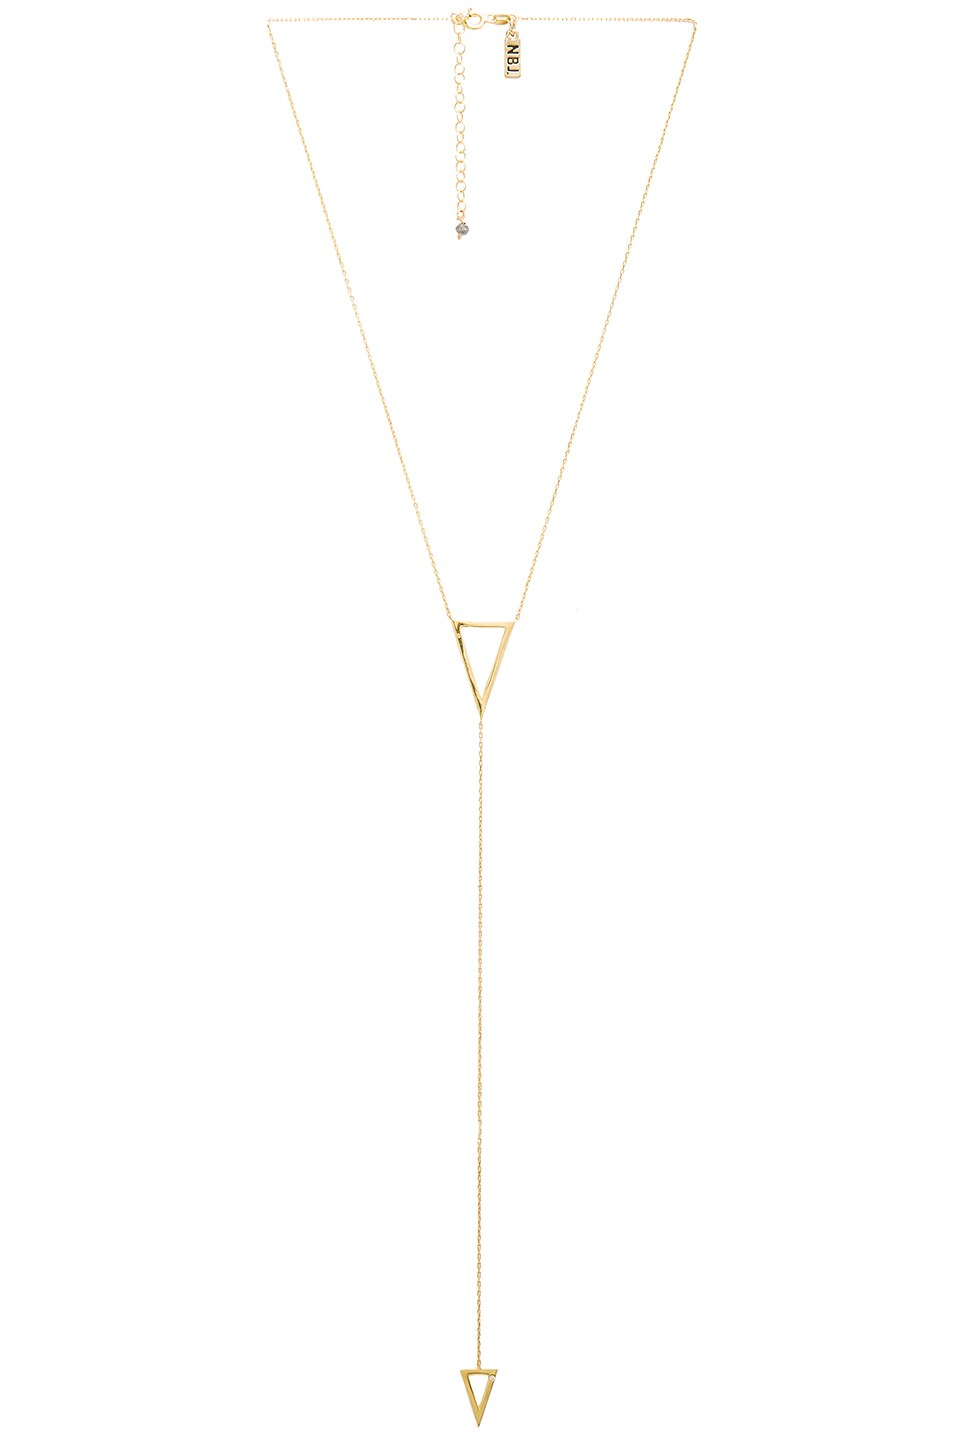 Natalie B Jewelry It's Goin' Down Necklace in Gold